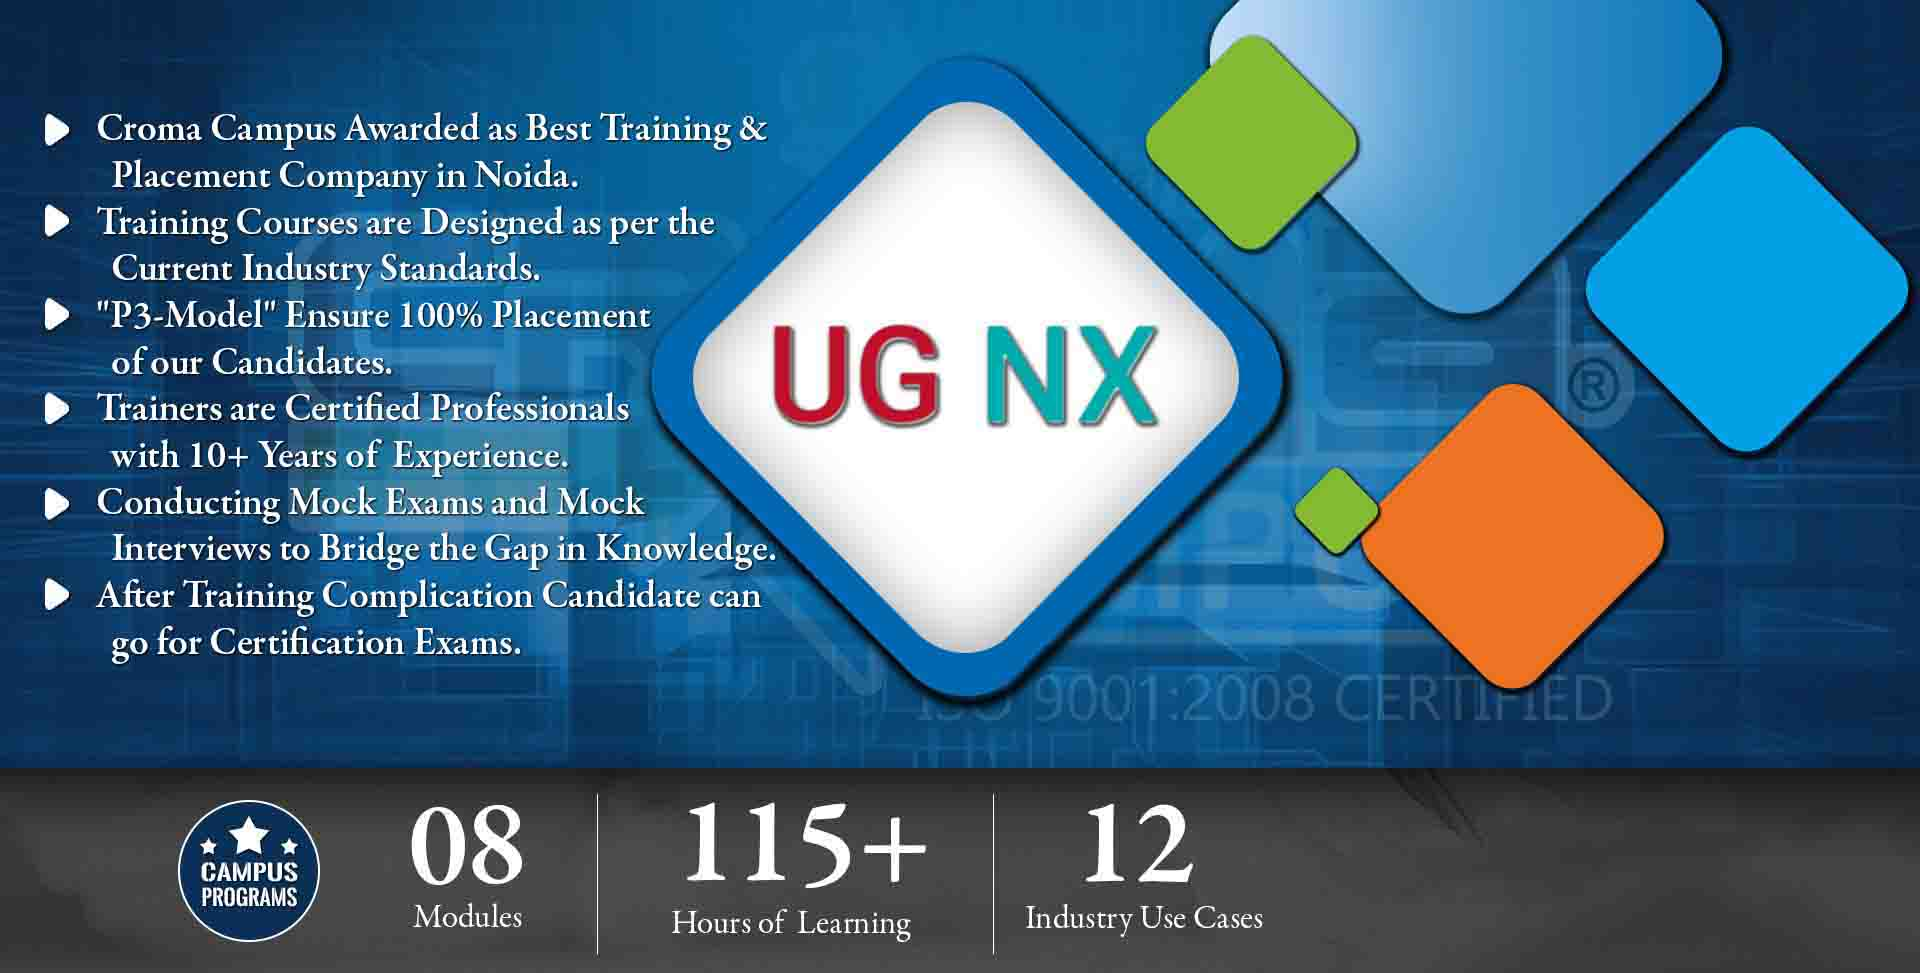 UGNX Training in Noida- Croma Campus